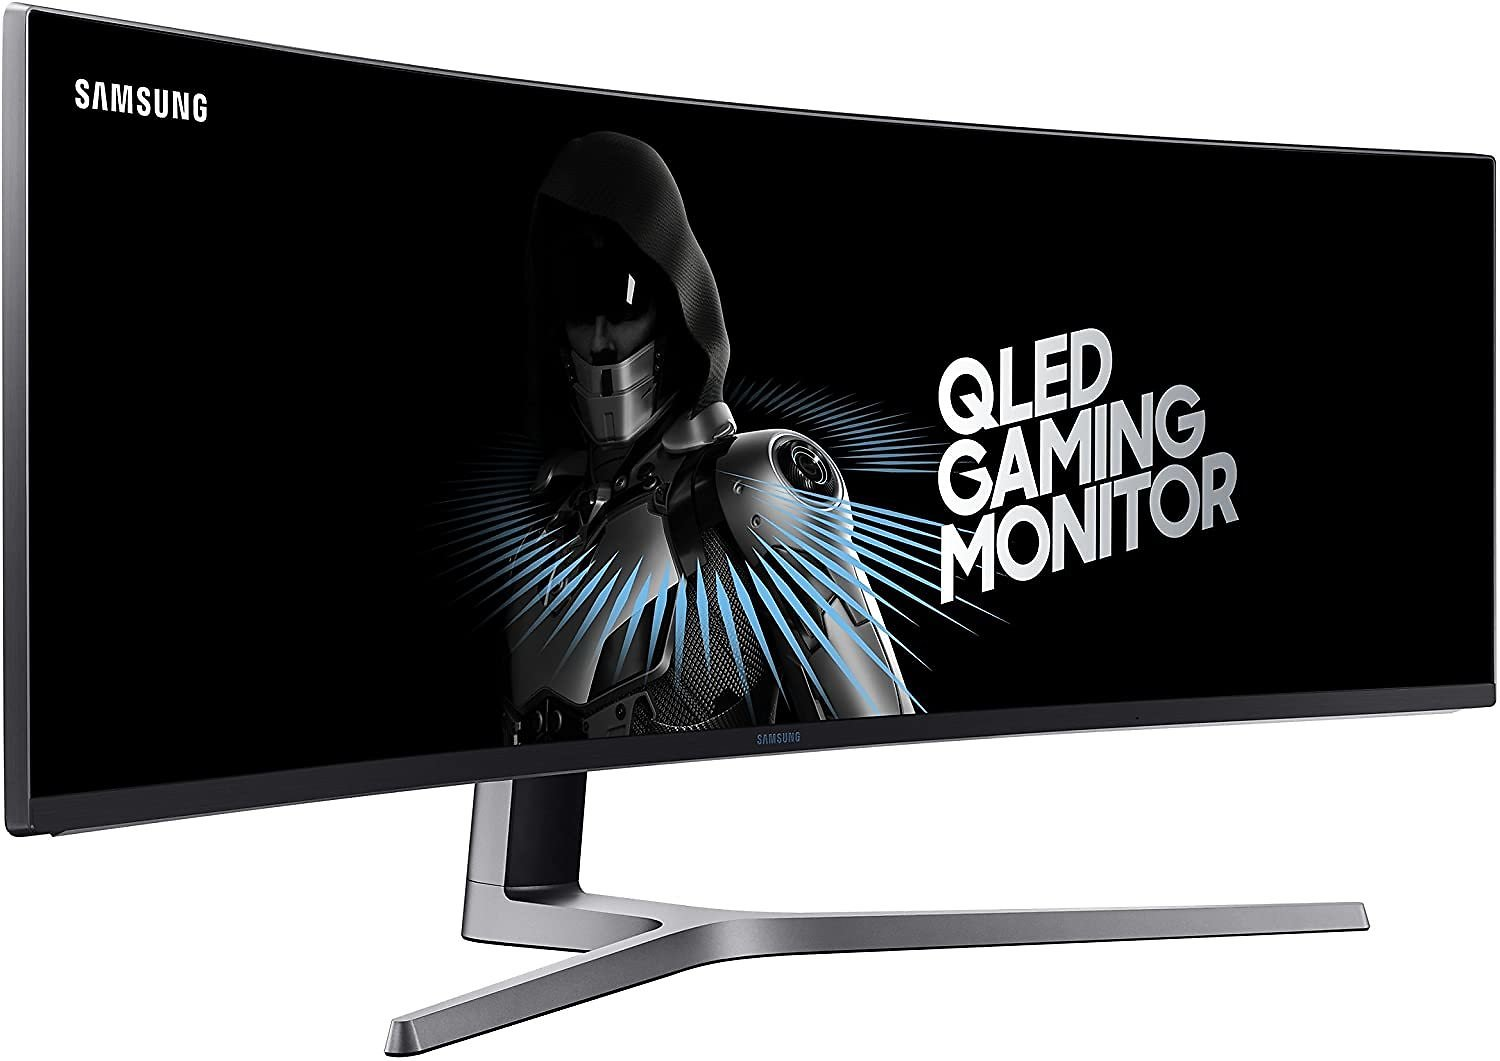 Samsung 49-Inch Curved Gaming Monitor